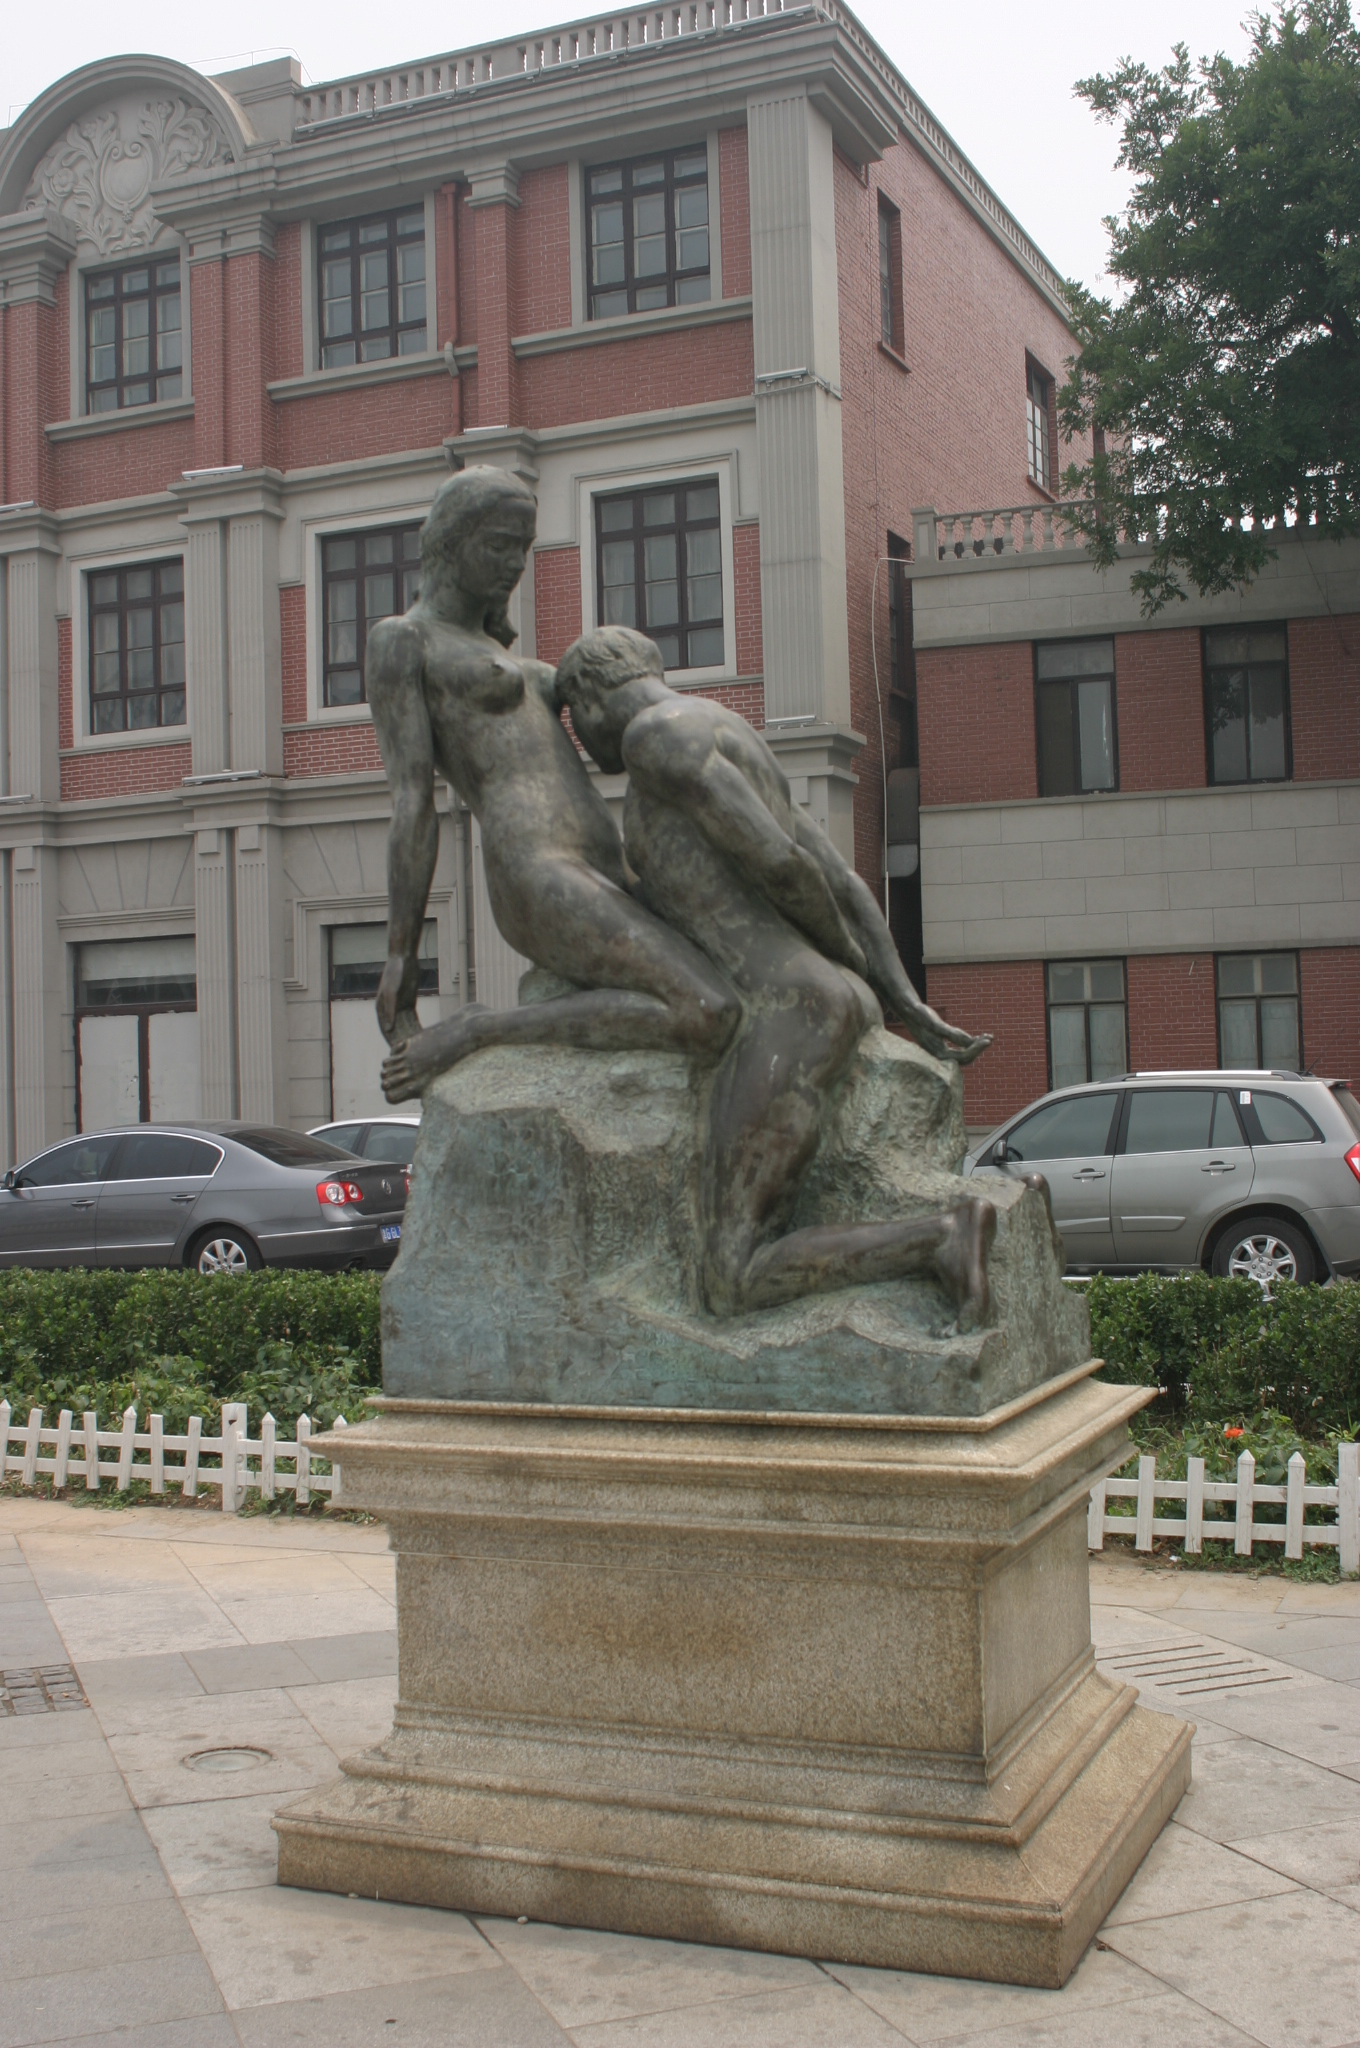 Commit error. sex with statues porn can